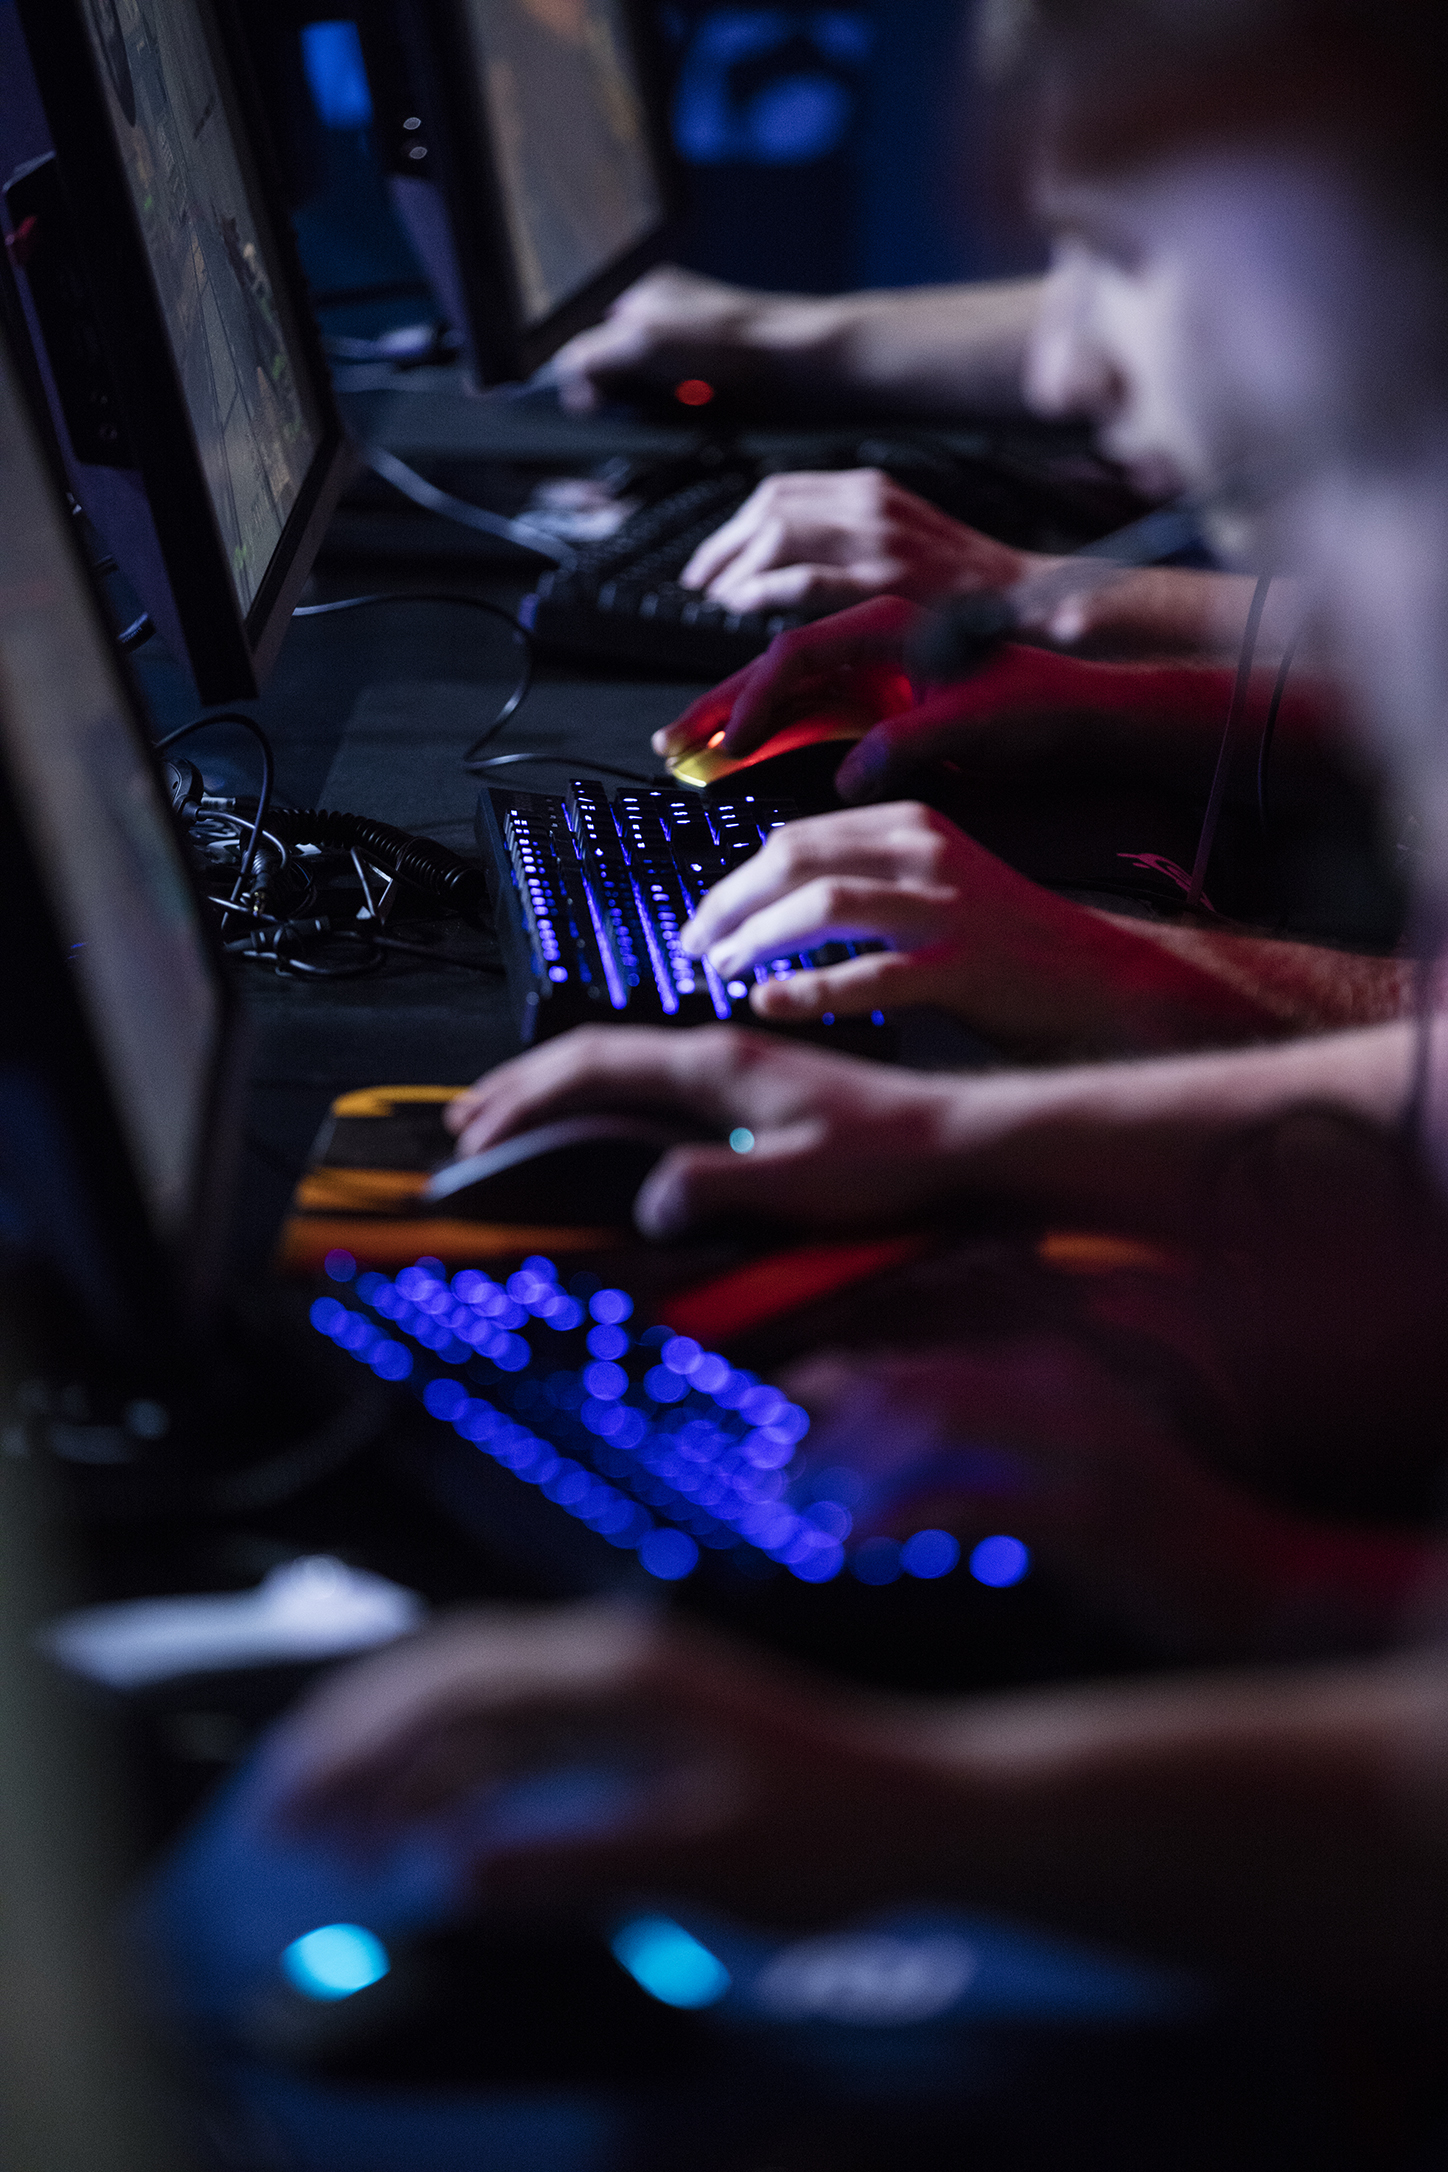 Steelseries Apex M500 The Mechanical Keyboard For Esports Now Available Red Switch Gaming Used By Team Virtus Pro During Mlg Columbus Features Cherry Mx Switches